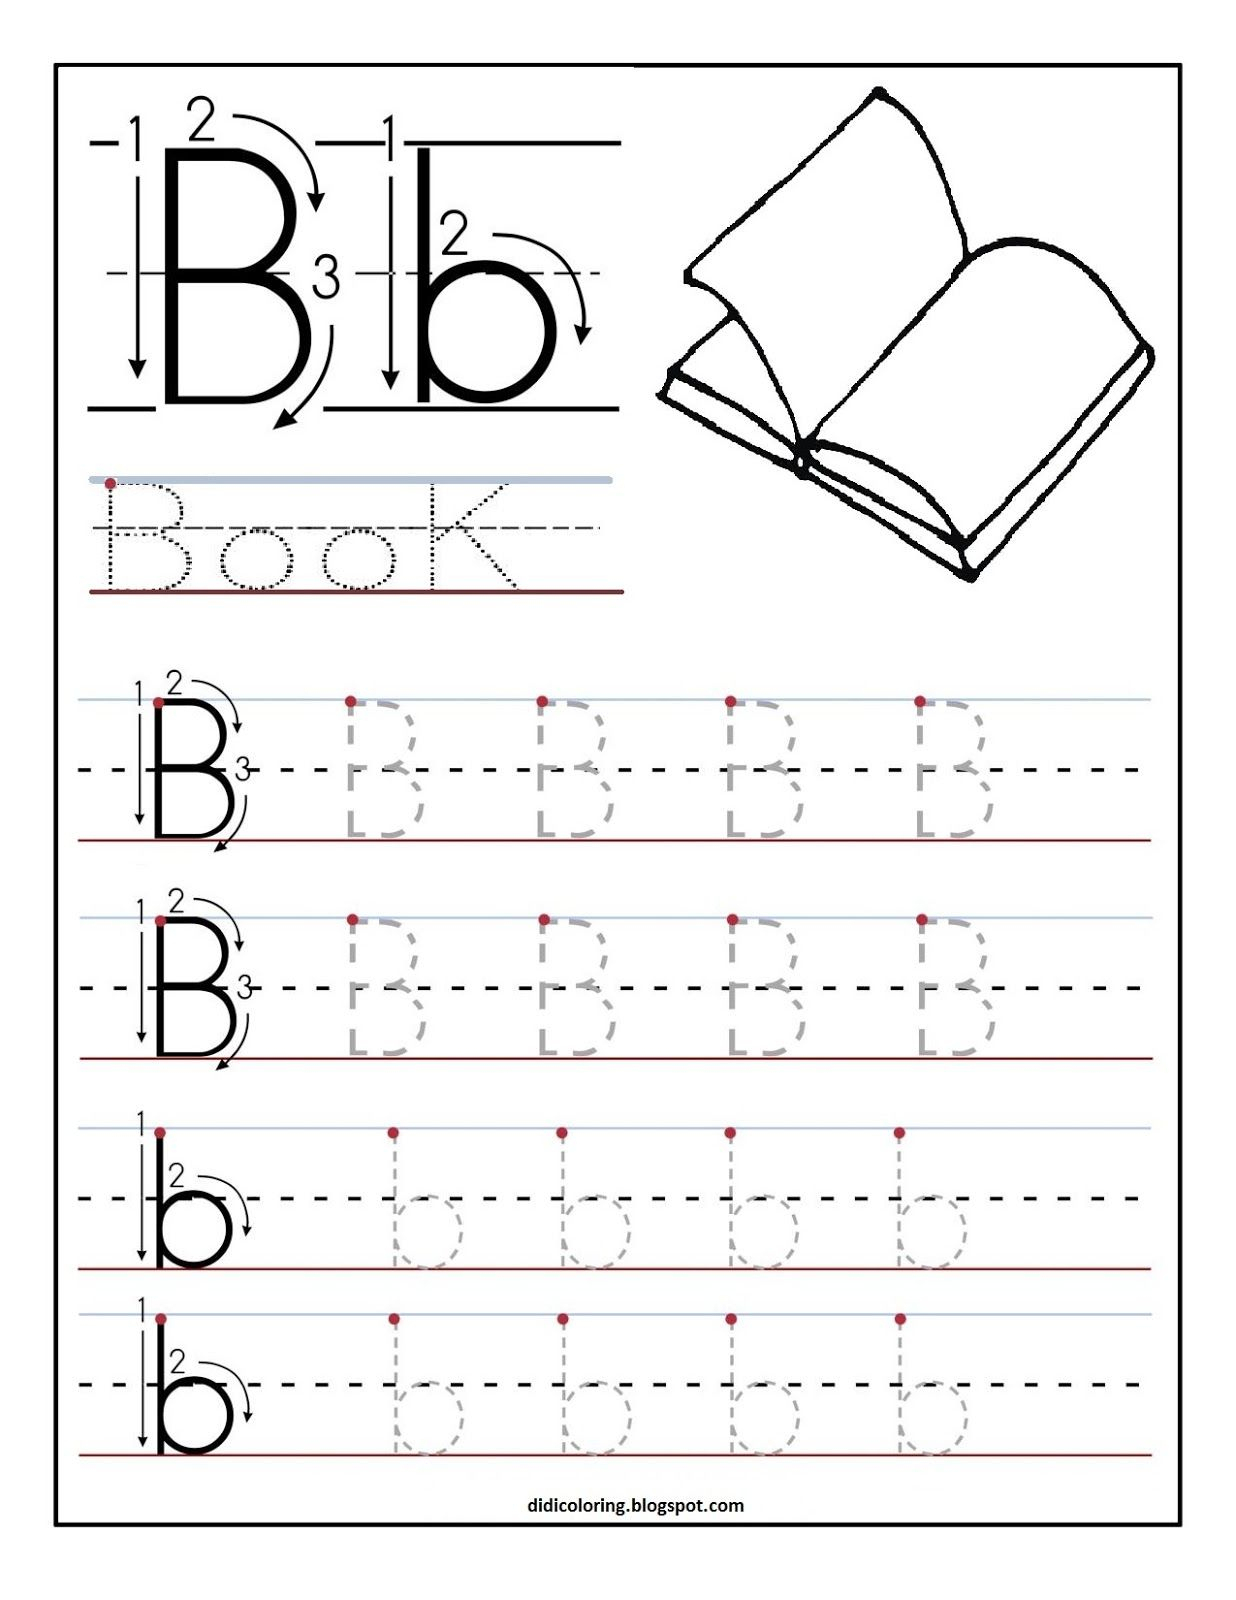 Free Printable Worksheet Letter B For Your Child To Learn And Write | Learn Your Letters Printable Worksheets